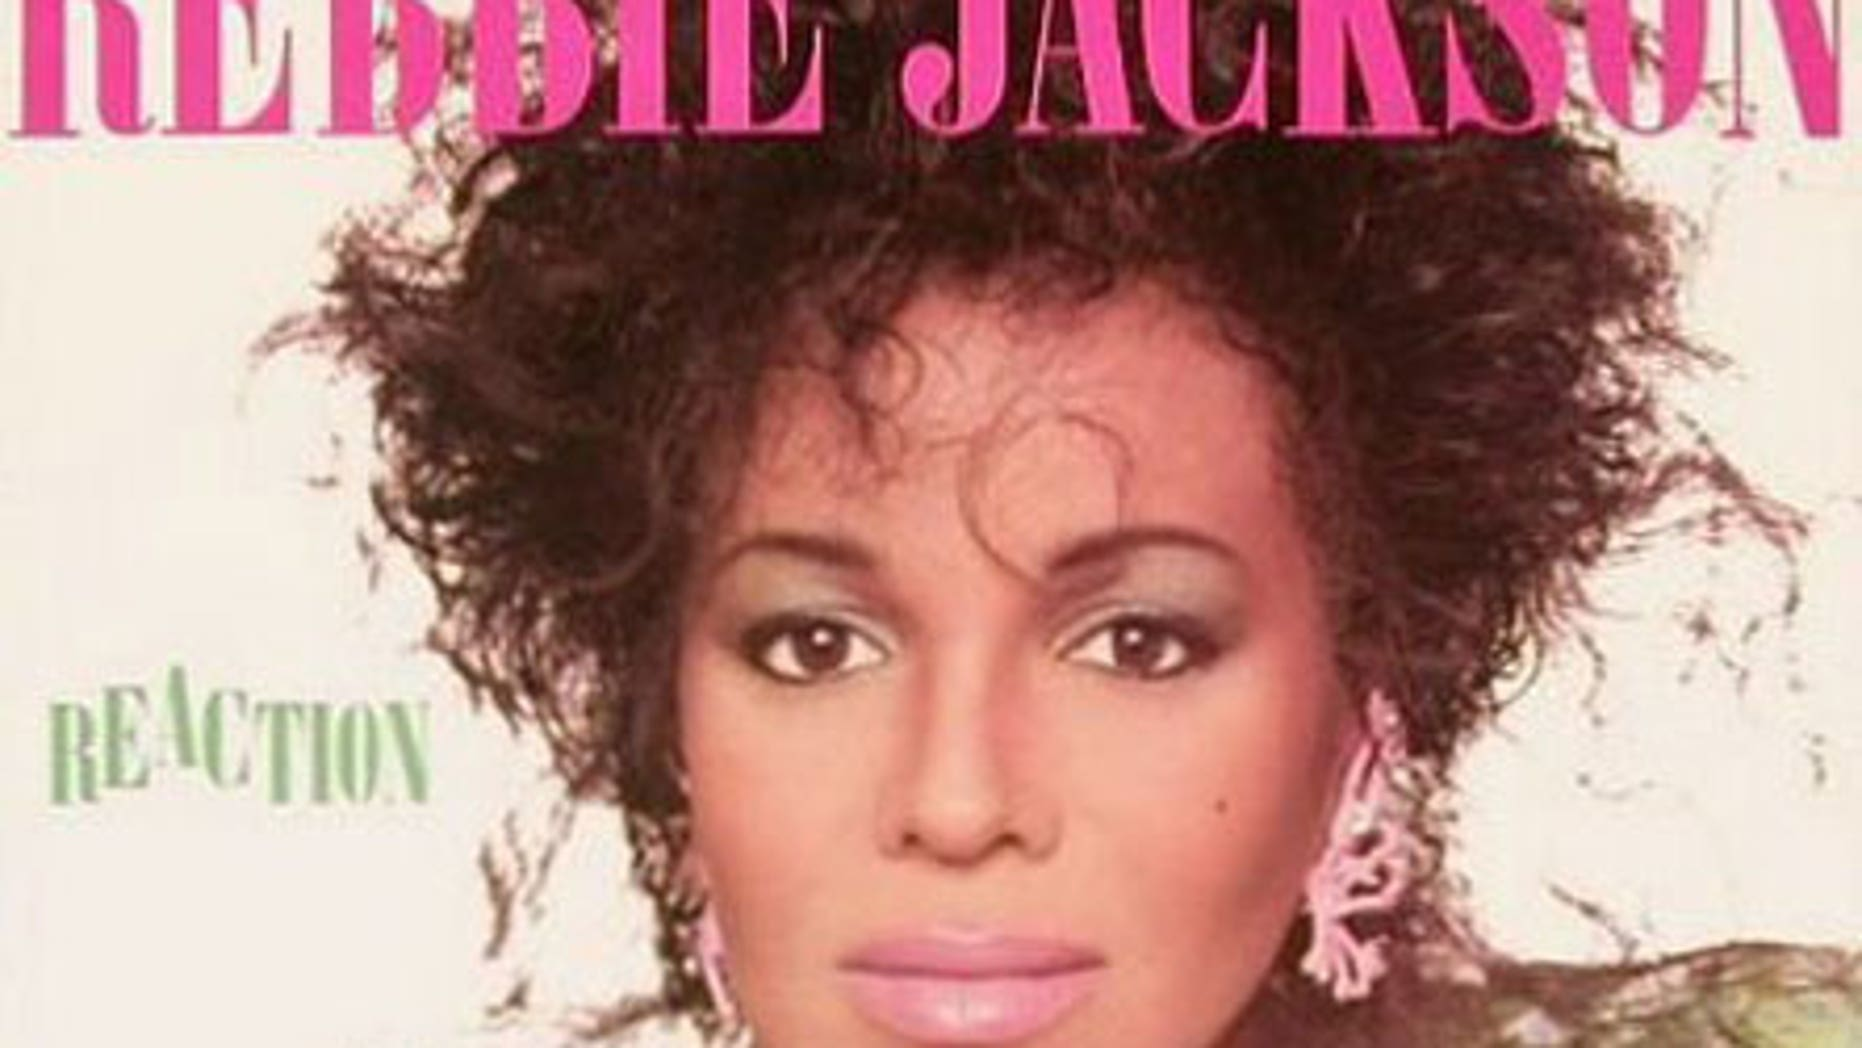 Rebbie Jackson's 'Reaction' album cover.